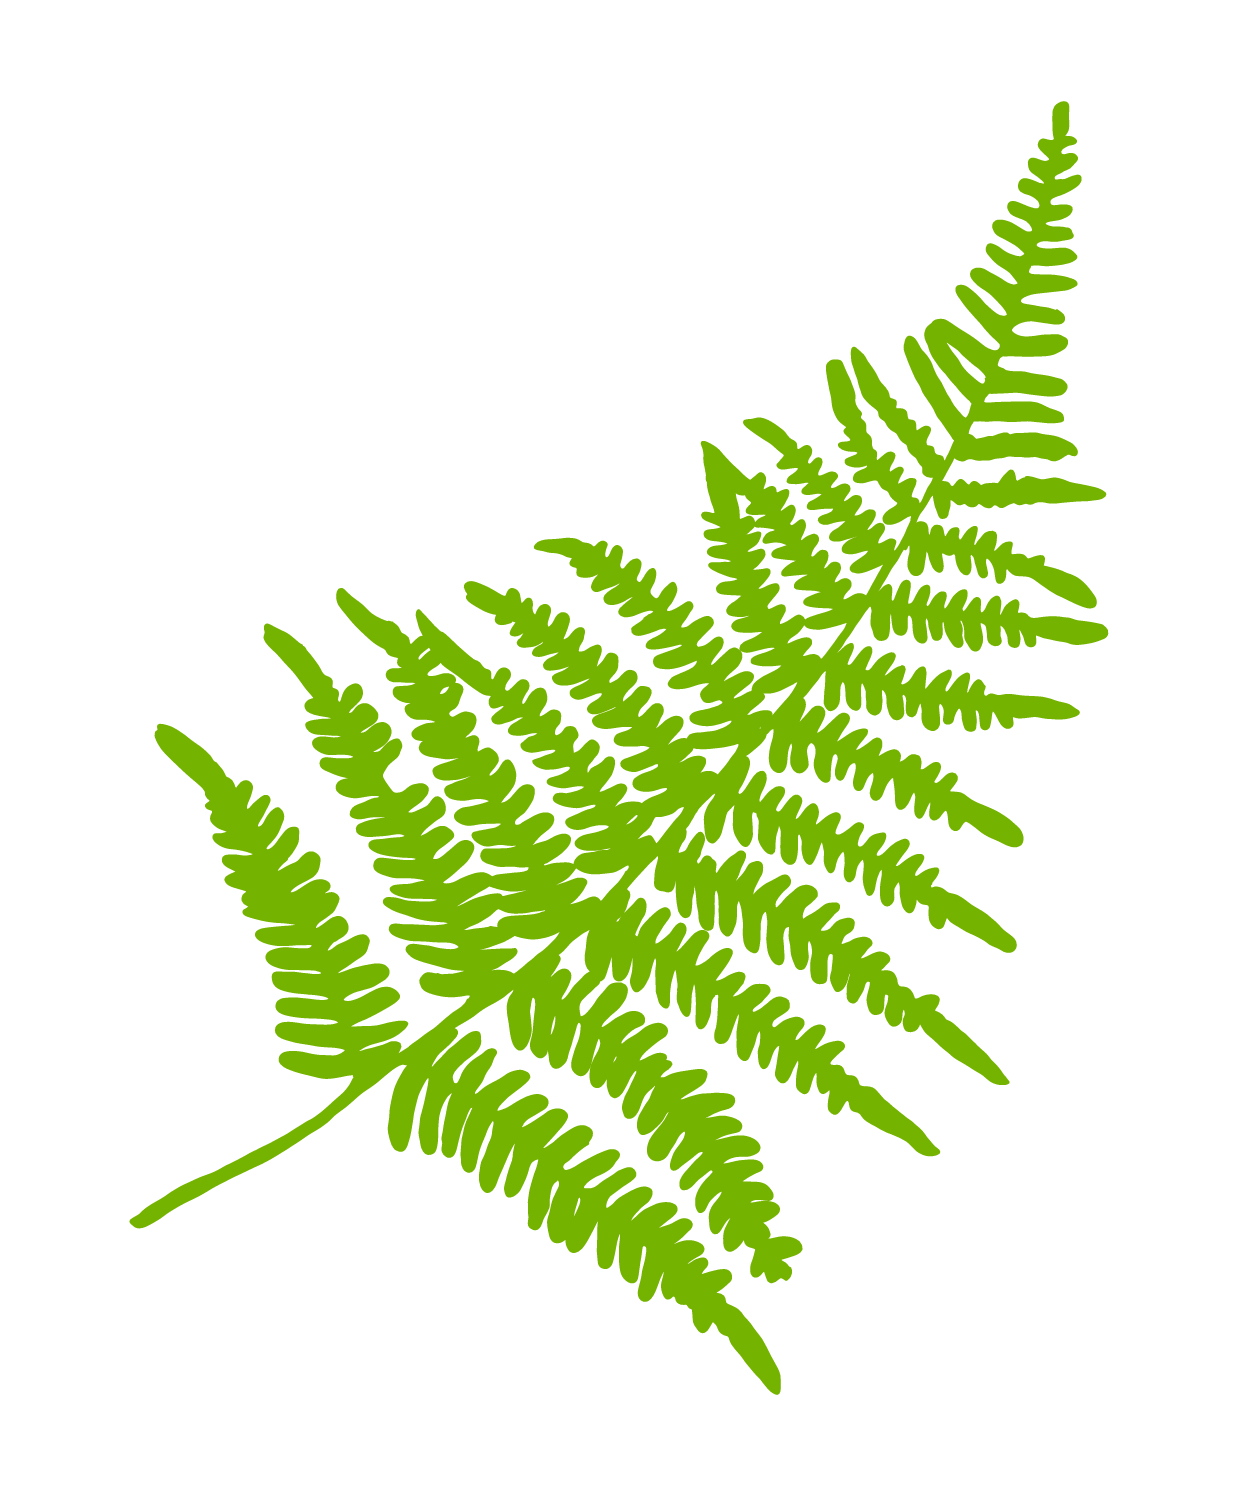 DBD_Element_Green_Fern.jpg